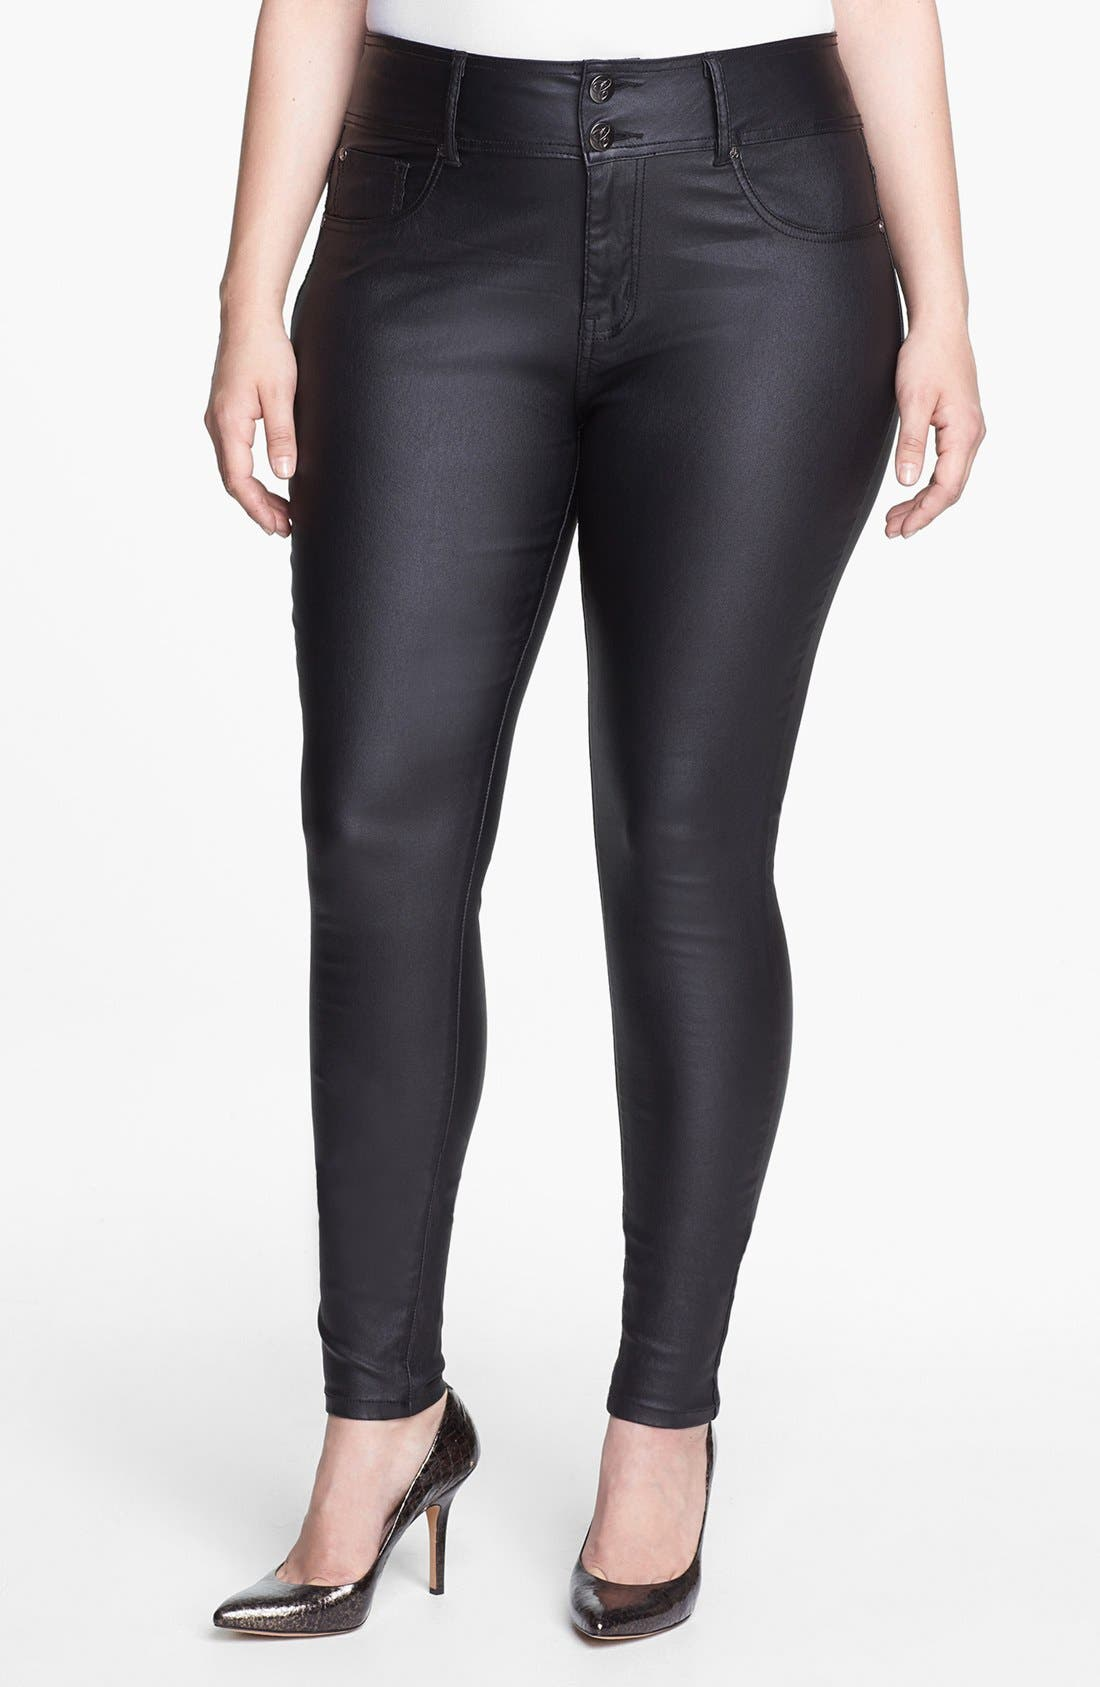 Main Image - City Chic Wet Look Stretch Skinny Jeans (Plus Size)